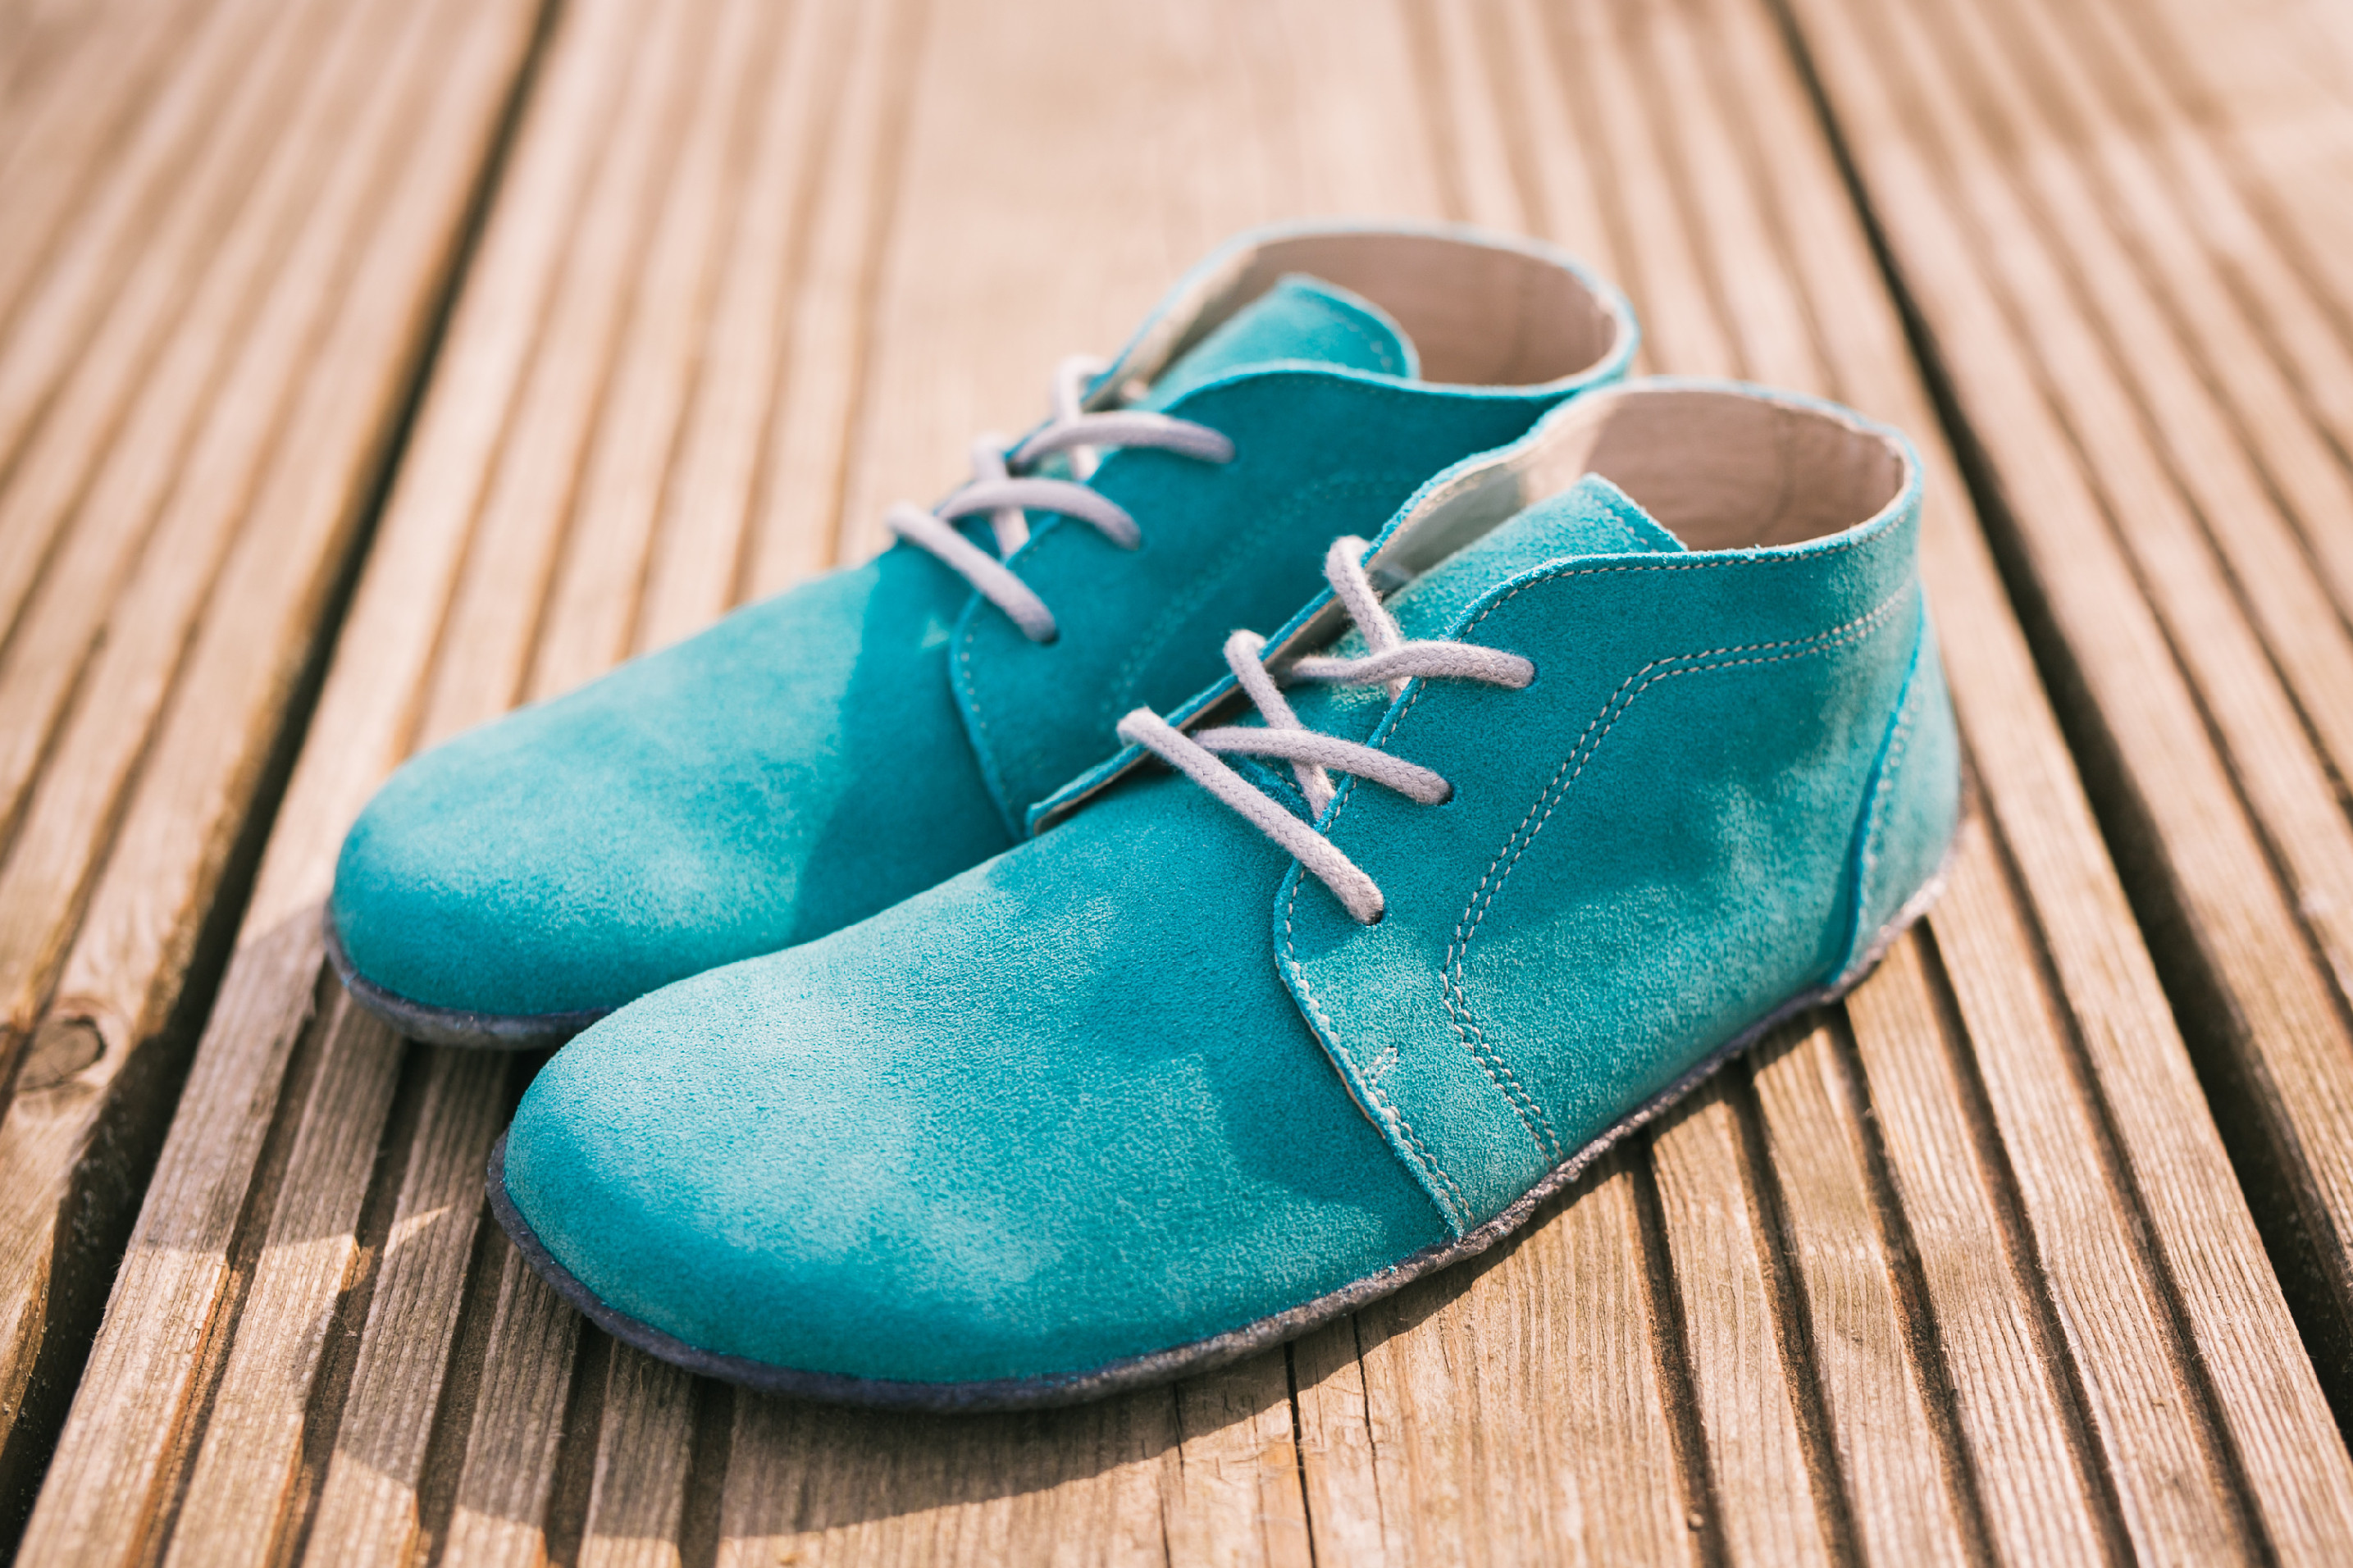 Barefoot Shoes - Be Lenka All-year - Turquoise 45